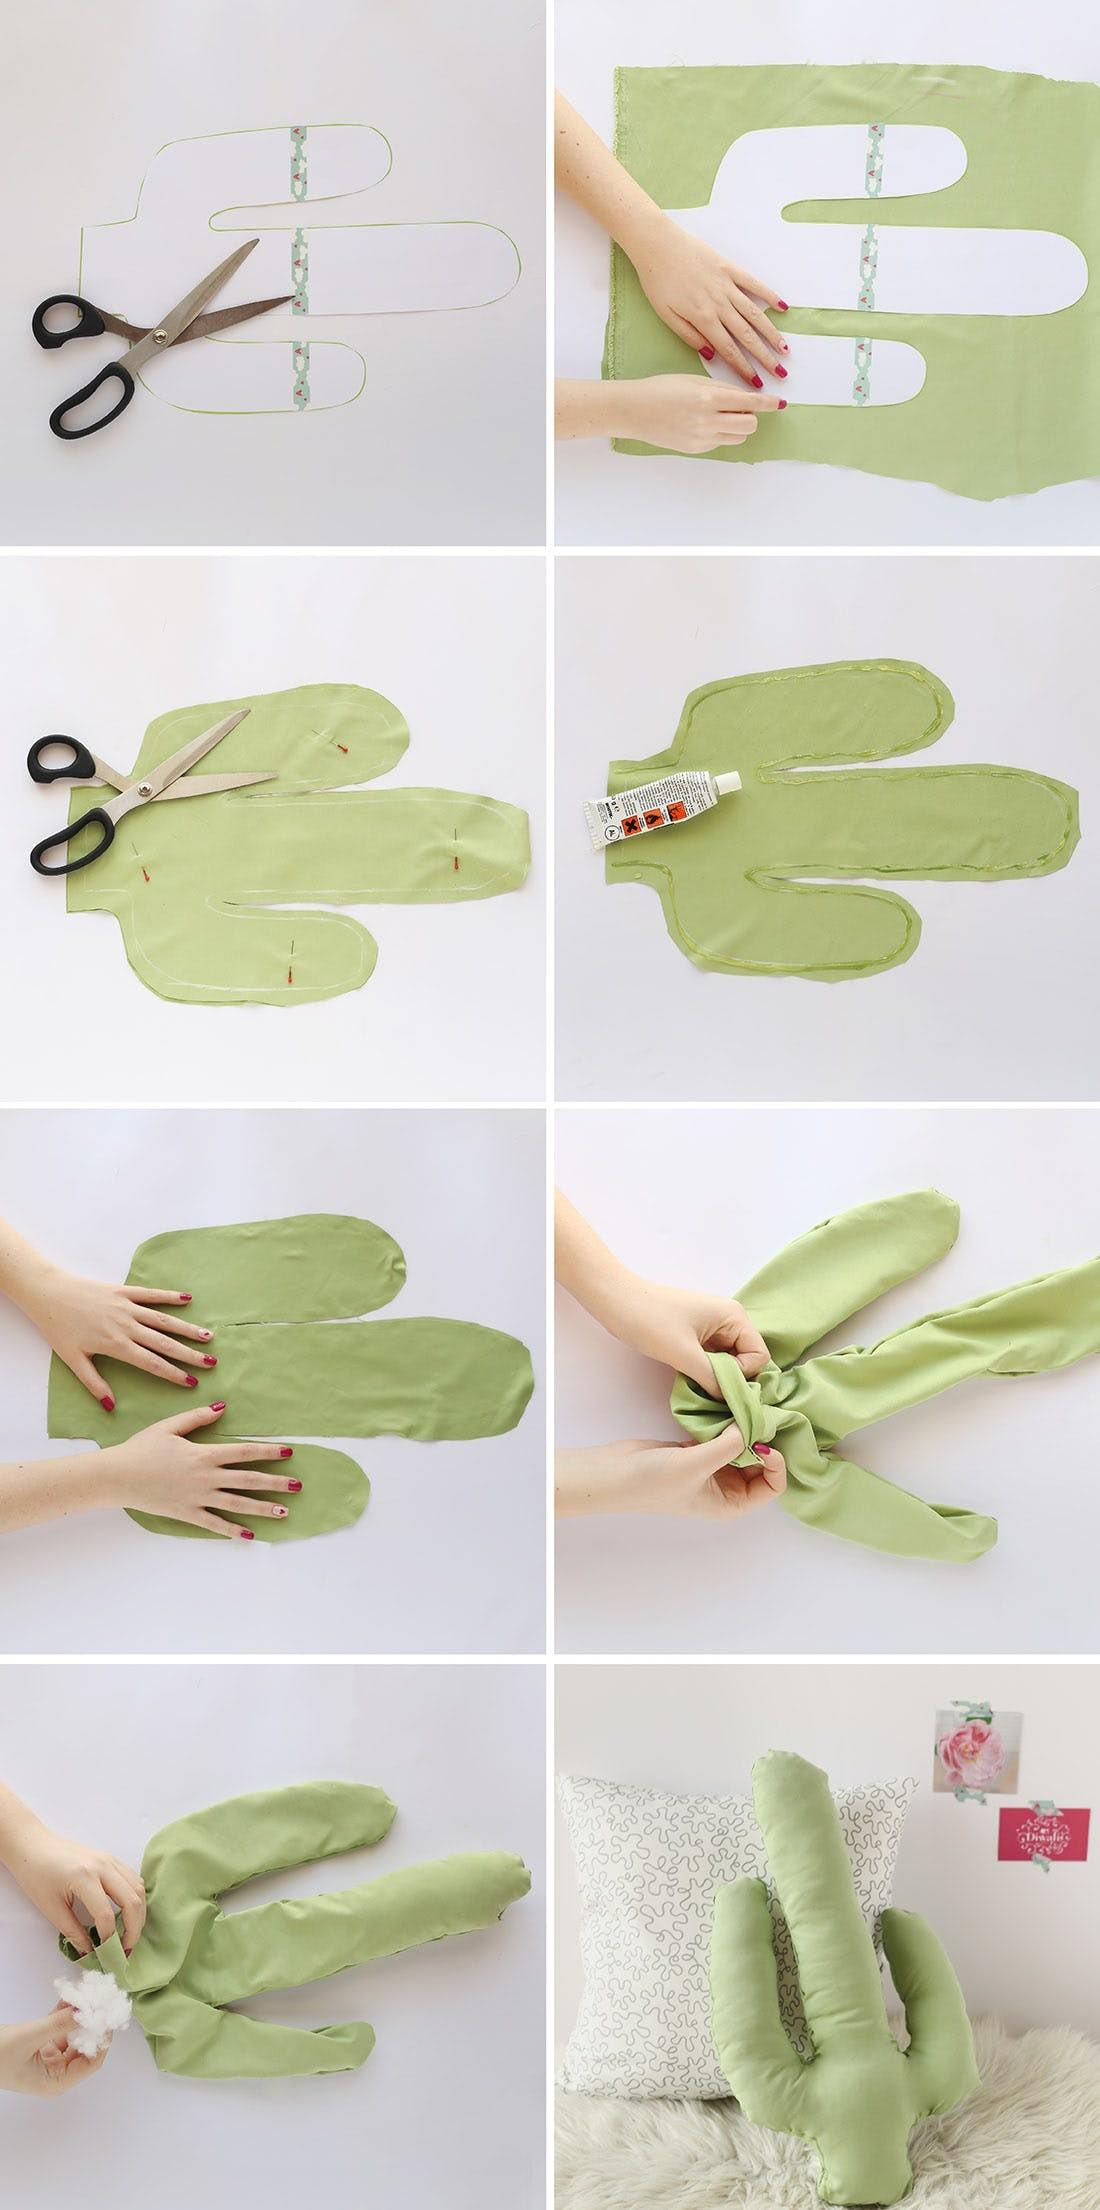 Upgrade Your Couch Hip Cactus Pillow Diy